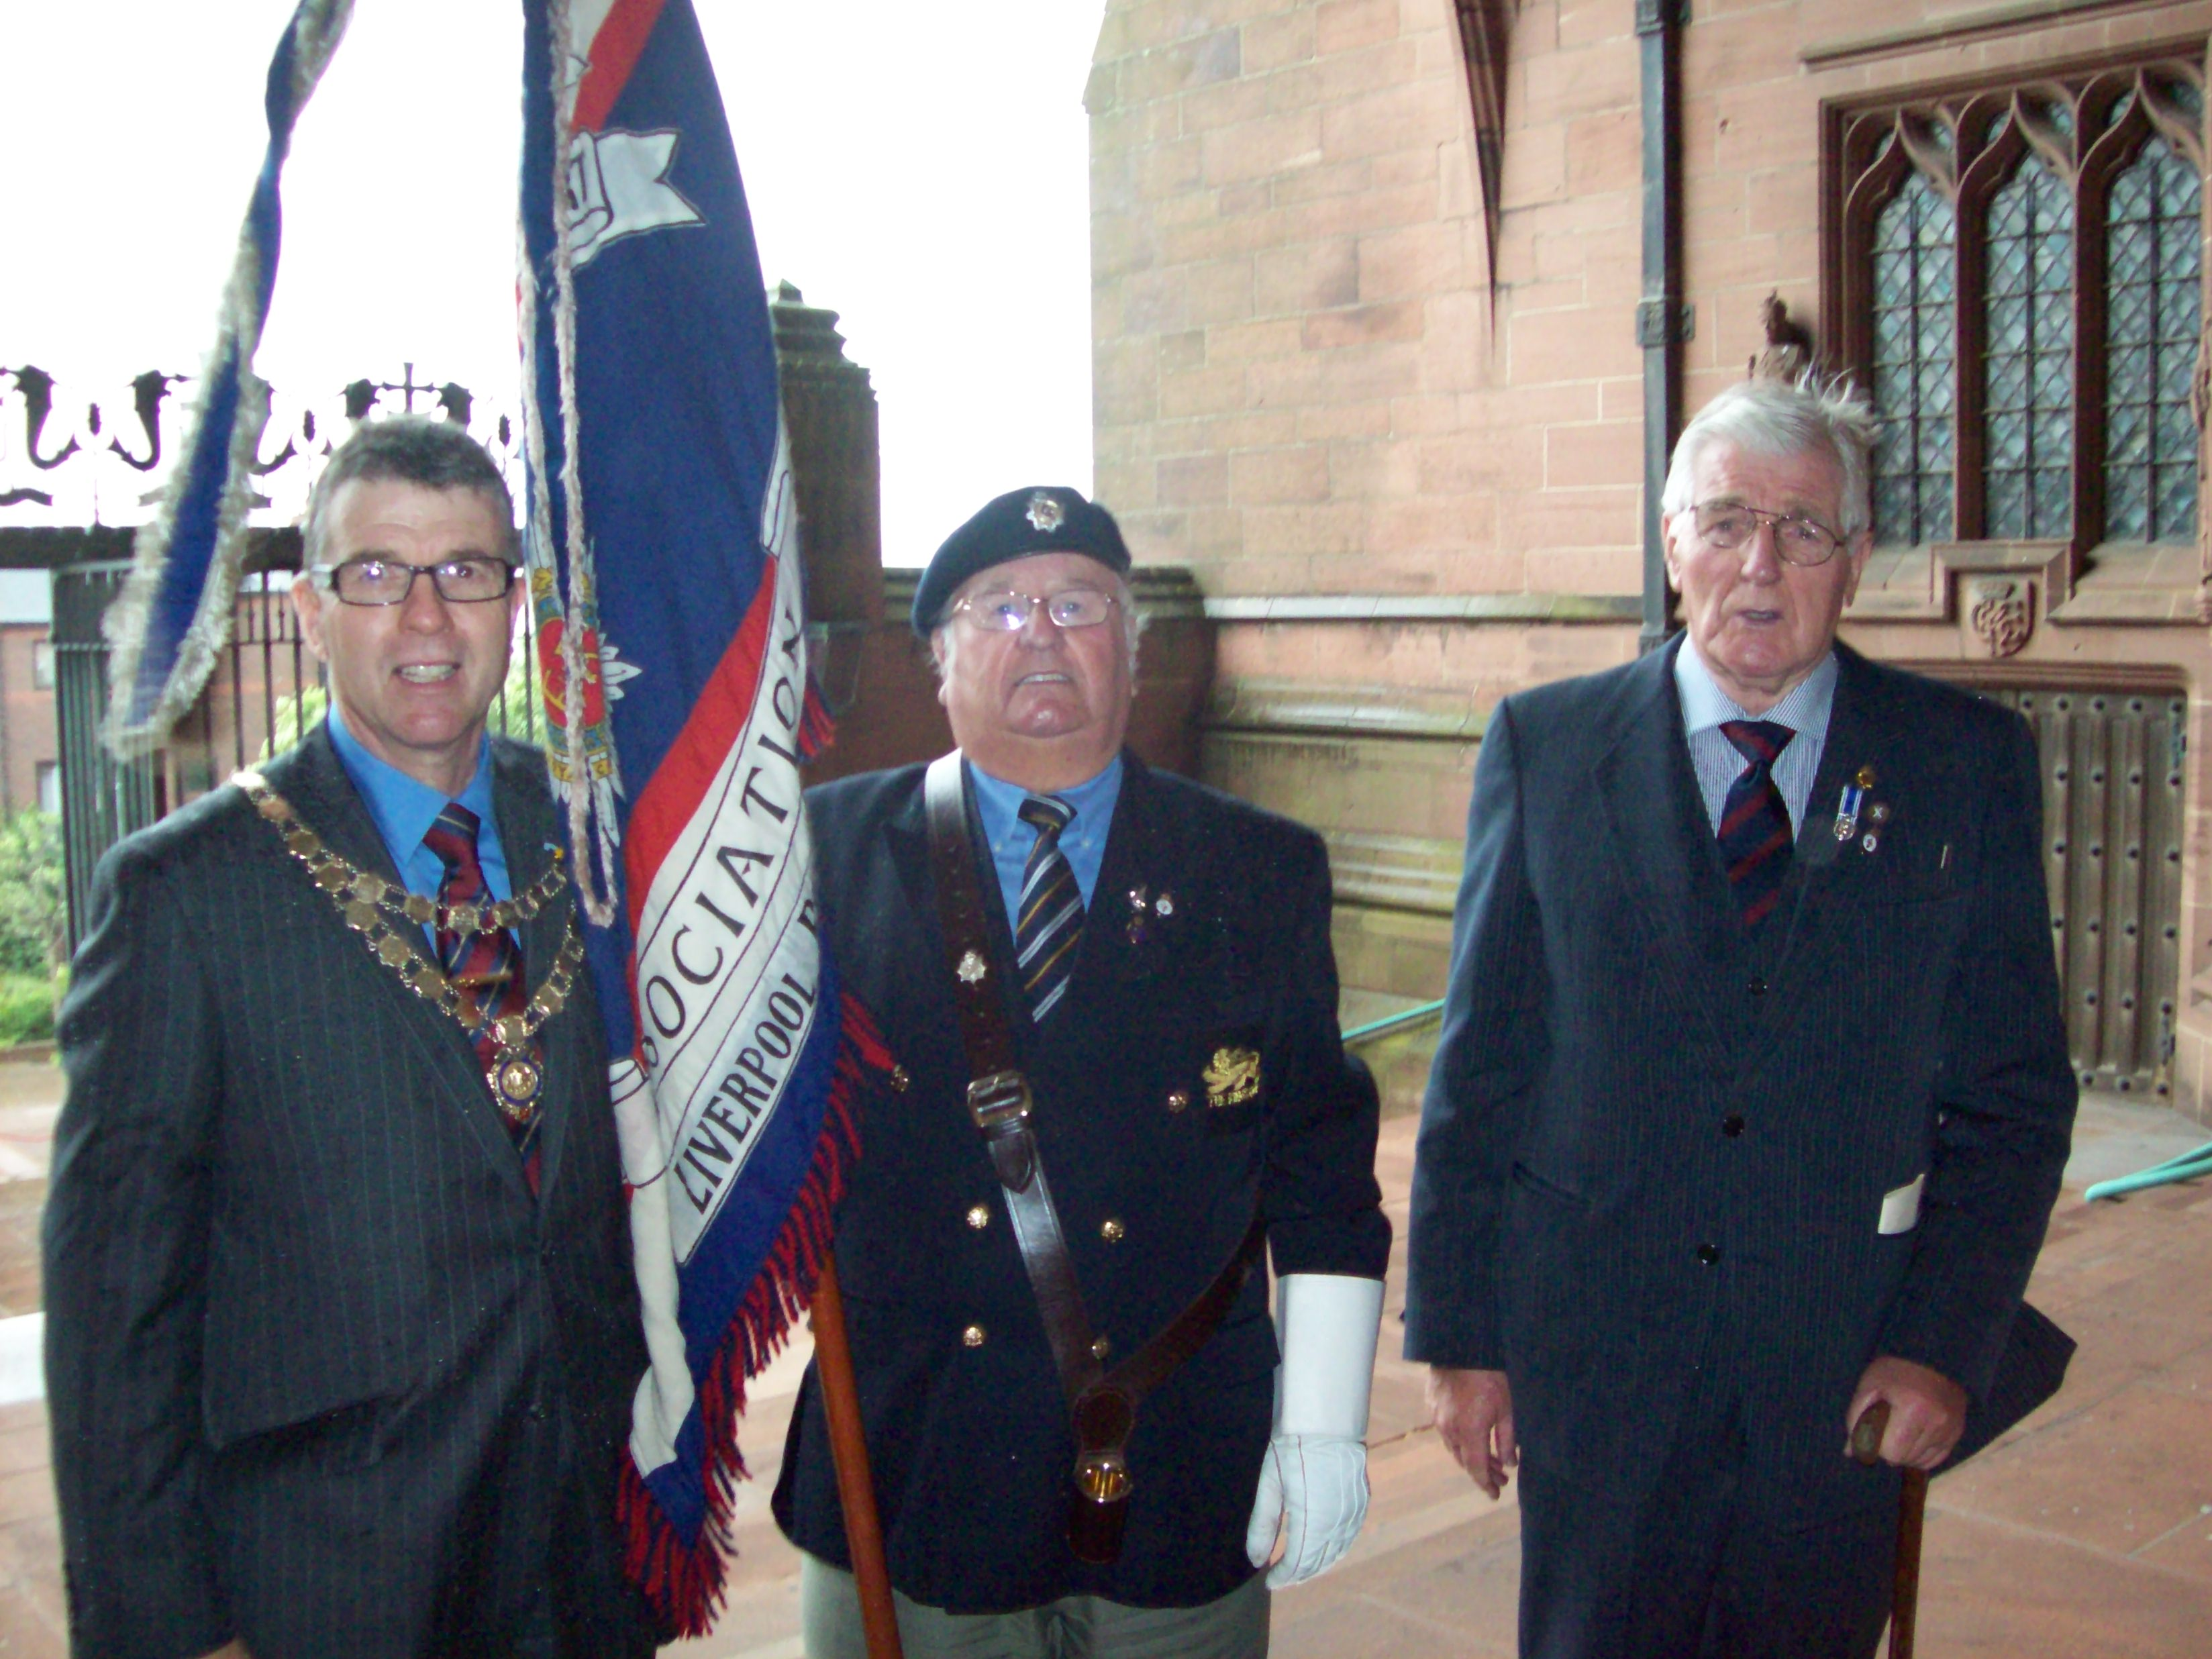 Mayor of Maghull, Labour's Cllr Steve Kermode with father James and Royal British legion Standard Bearer Maghull's Stan Thomason from the King's own Regiment.